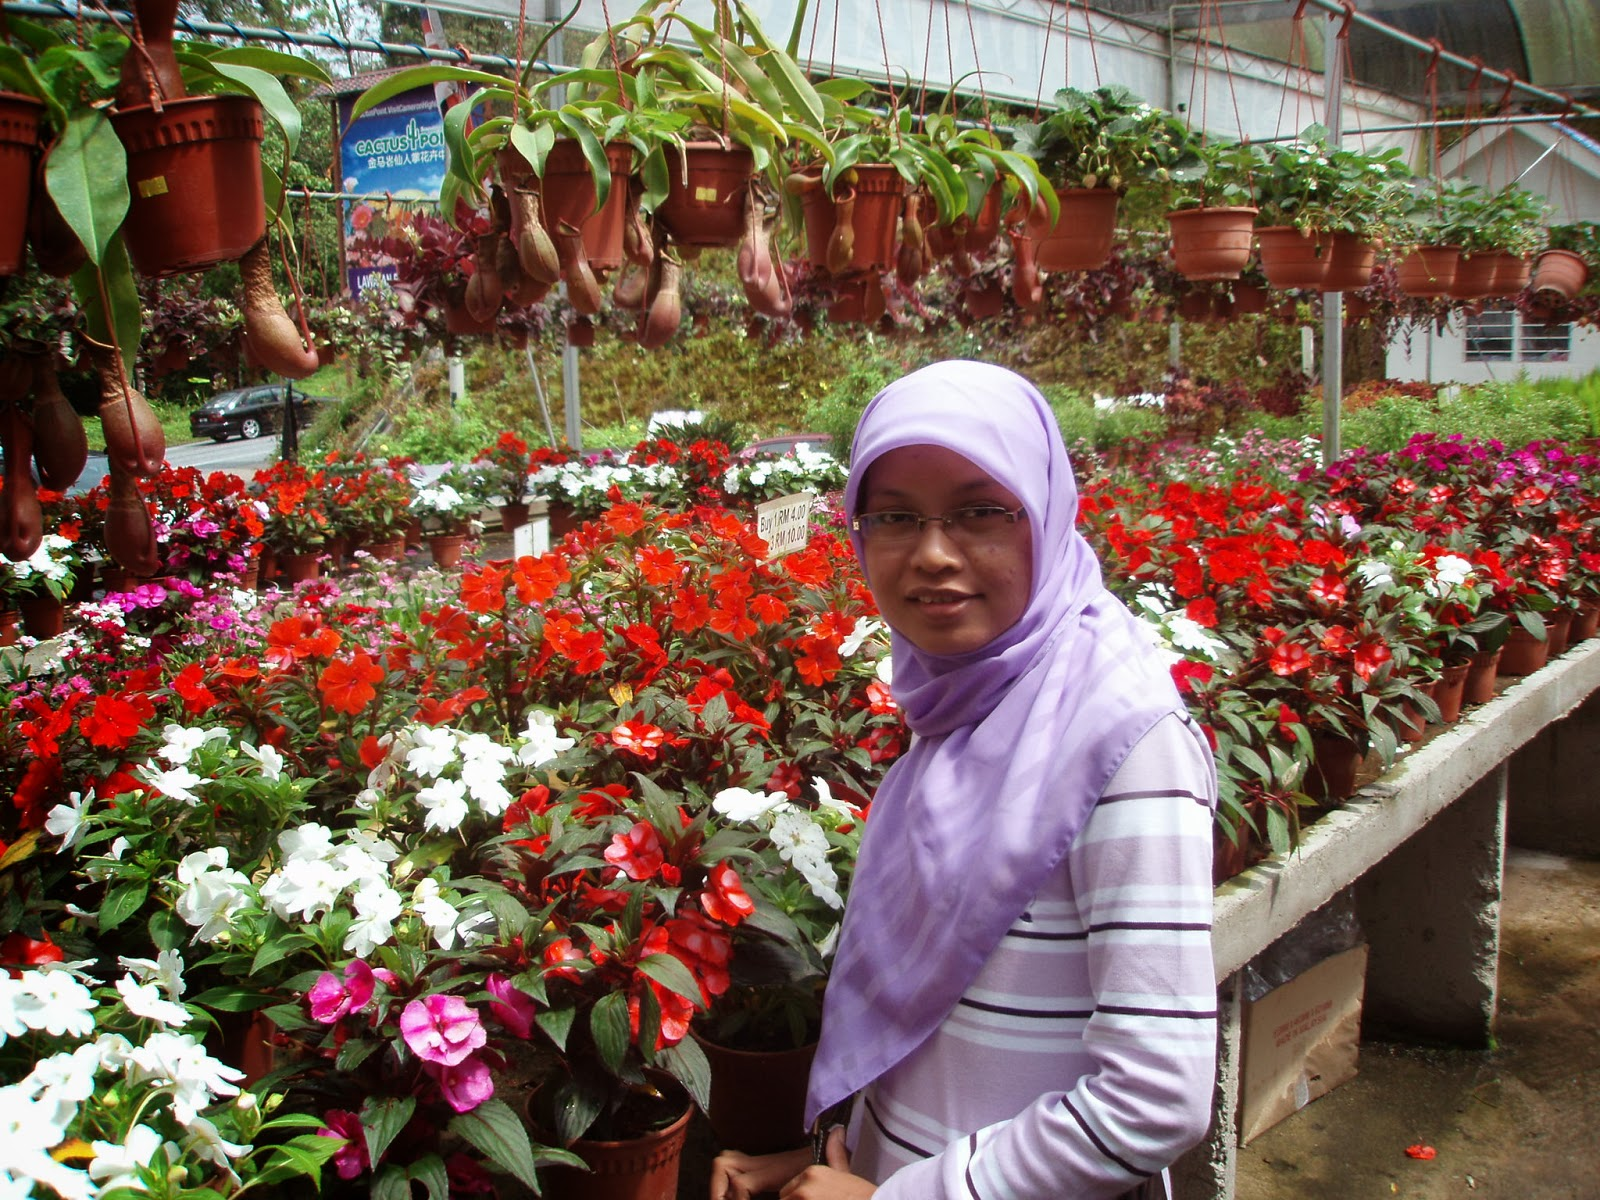 holiday parent and cameron highlands And if there's one thing this short weekend getaway to cameron highlands reminded me of theft etc - these things can ruin a perfectly good holiday.